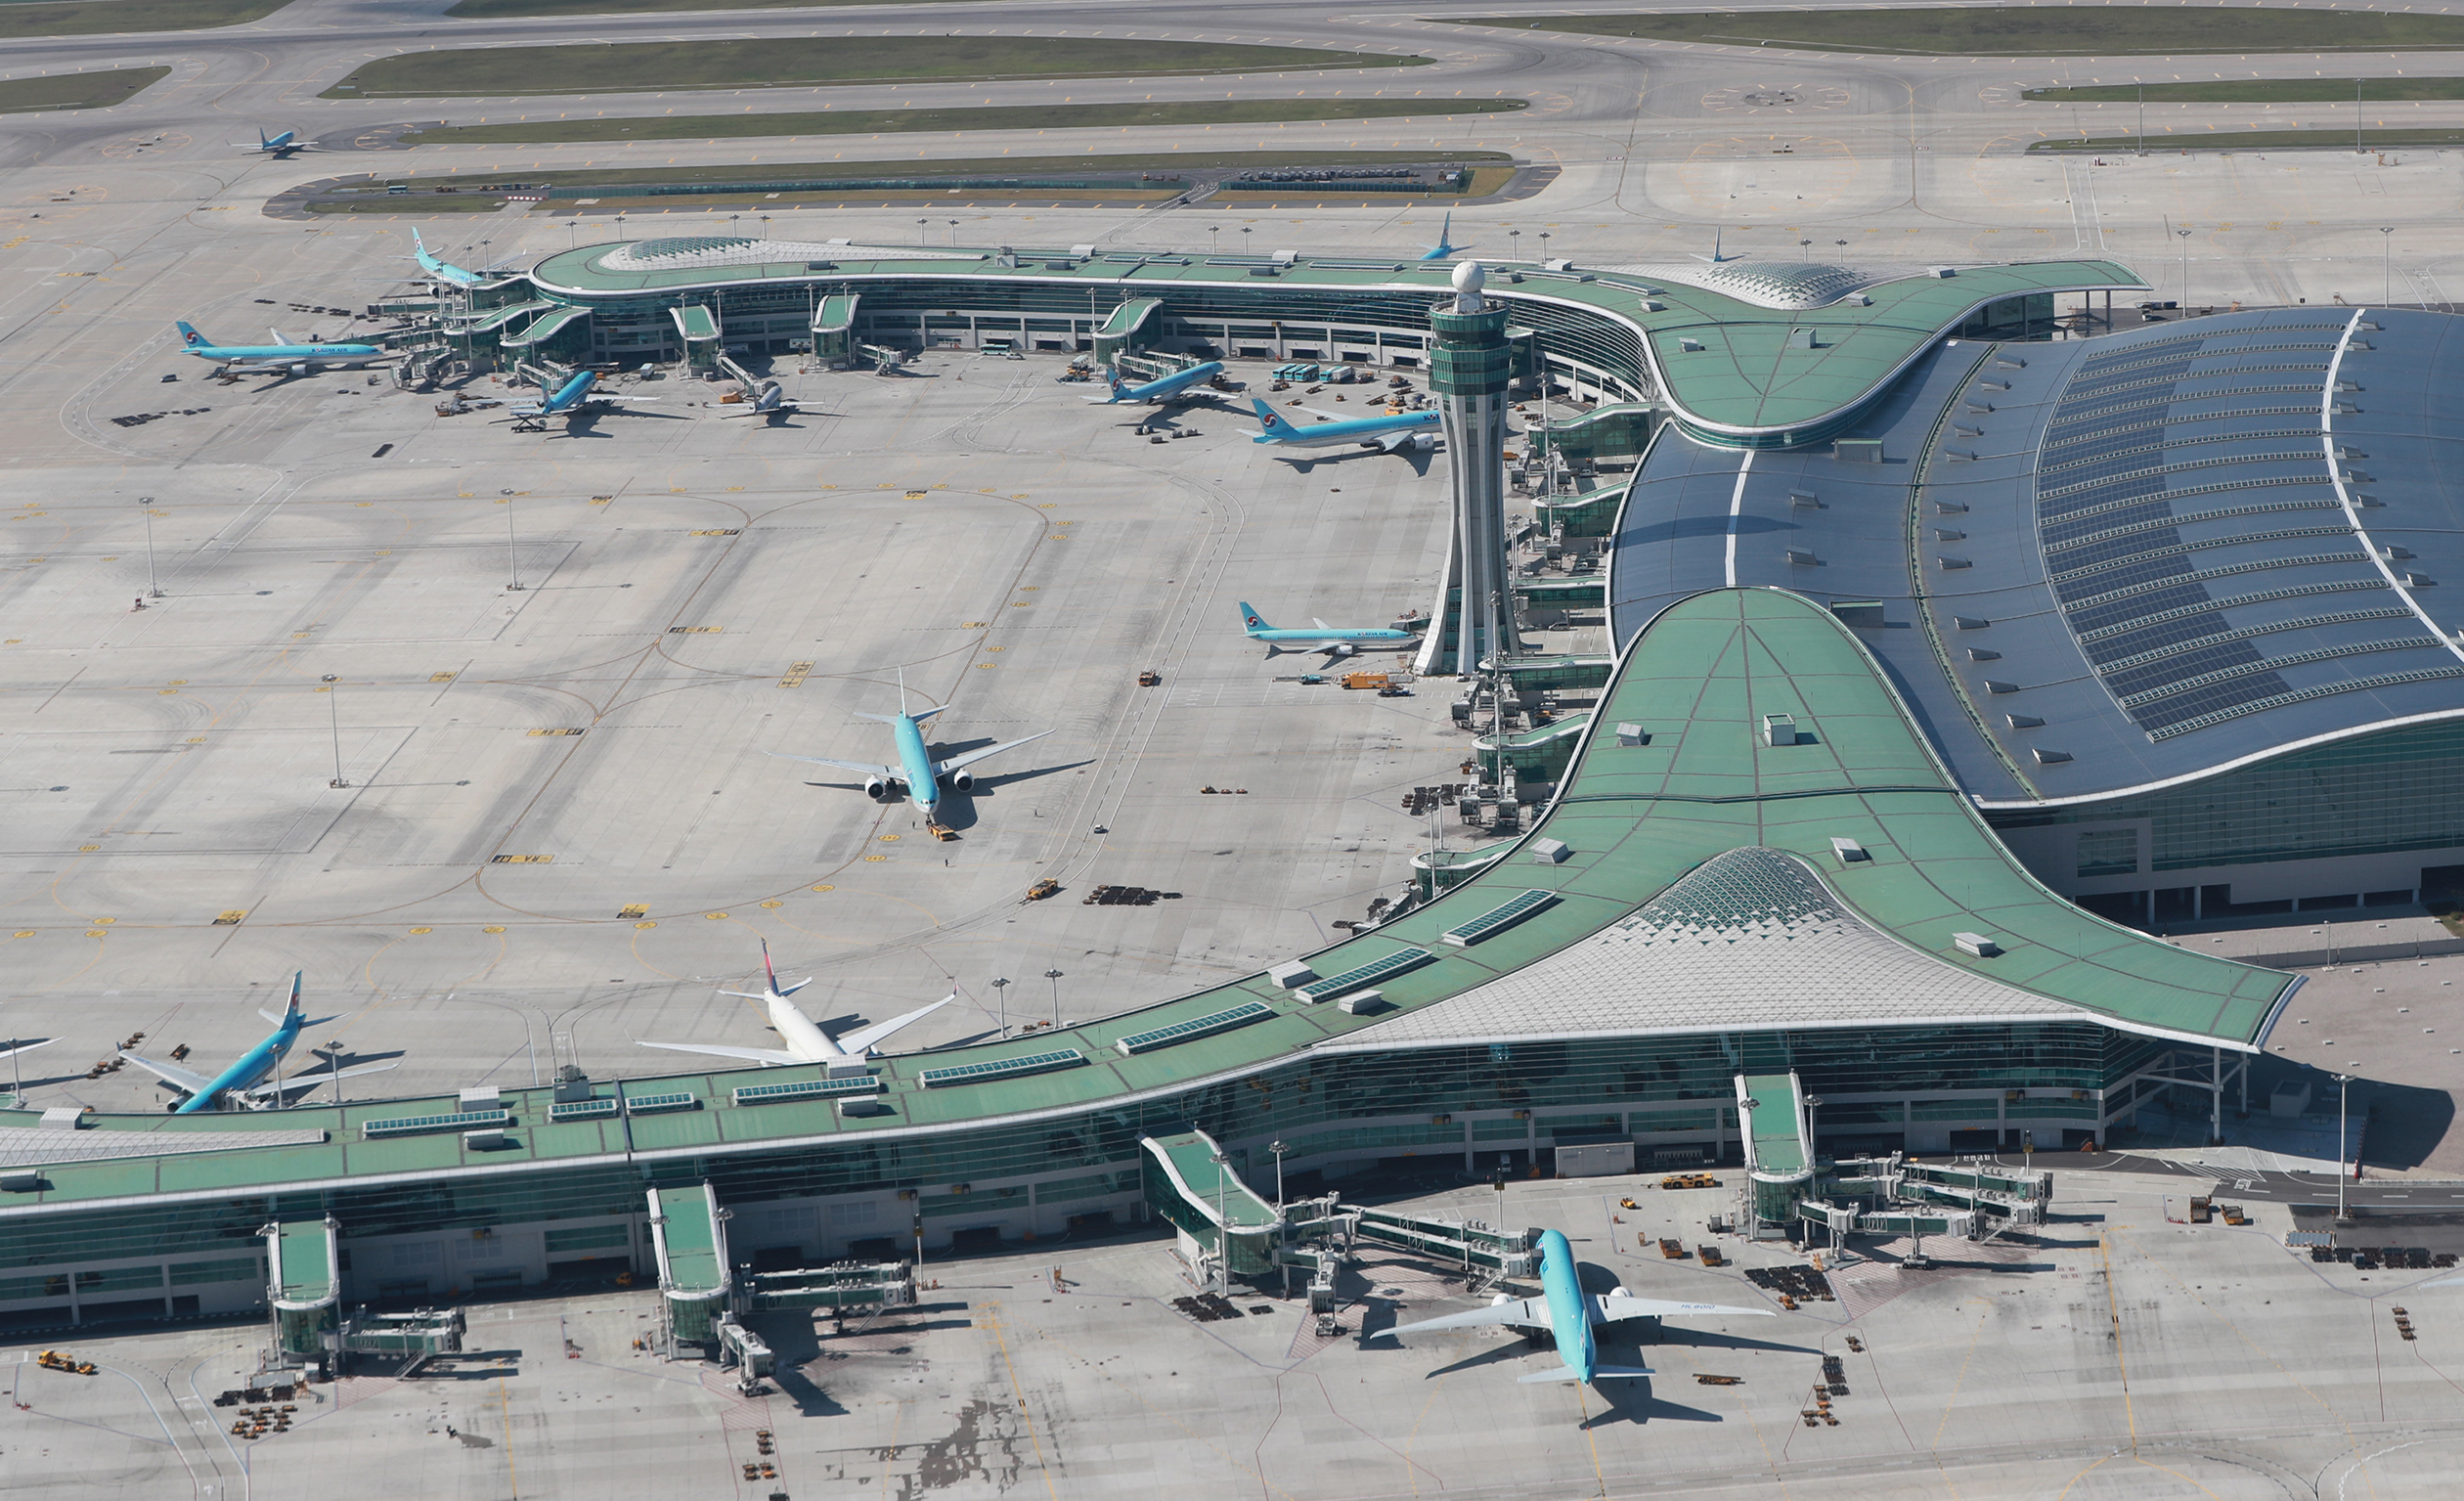 BASF's plastic additives package helps to protect the roof at Incheon Airport's Terminal 2 from wear and resulting from extreme heat and light exposure. (Source: BASF)